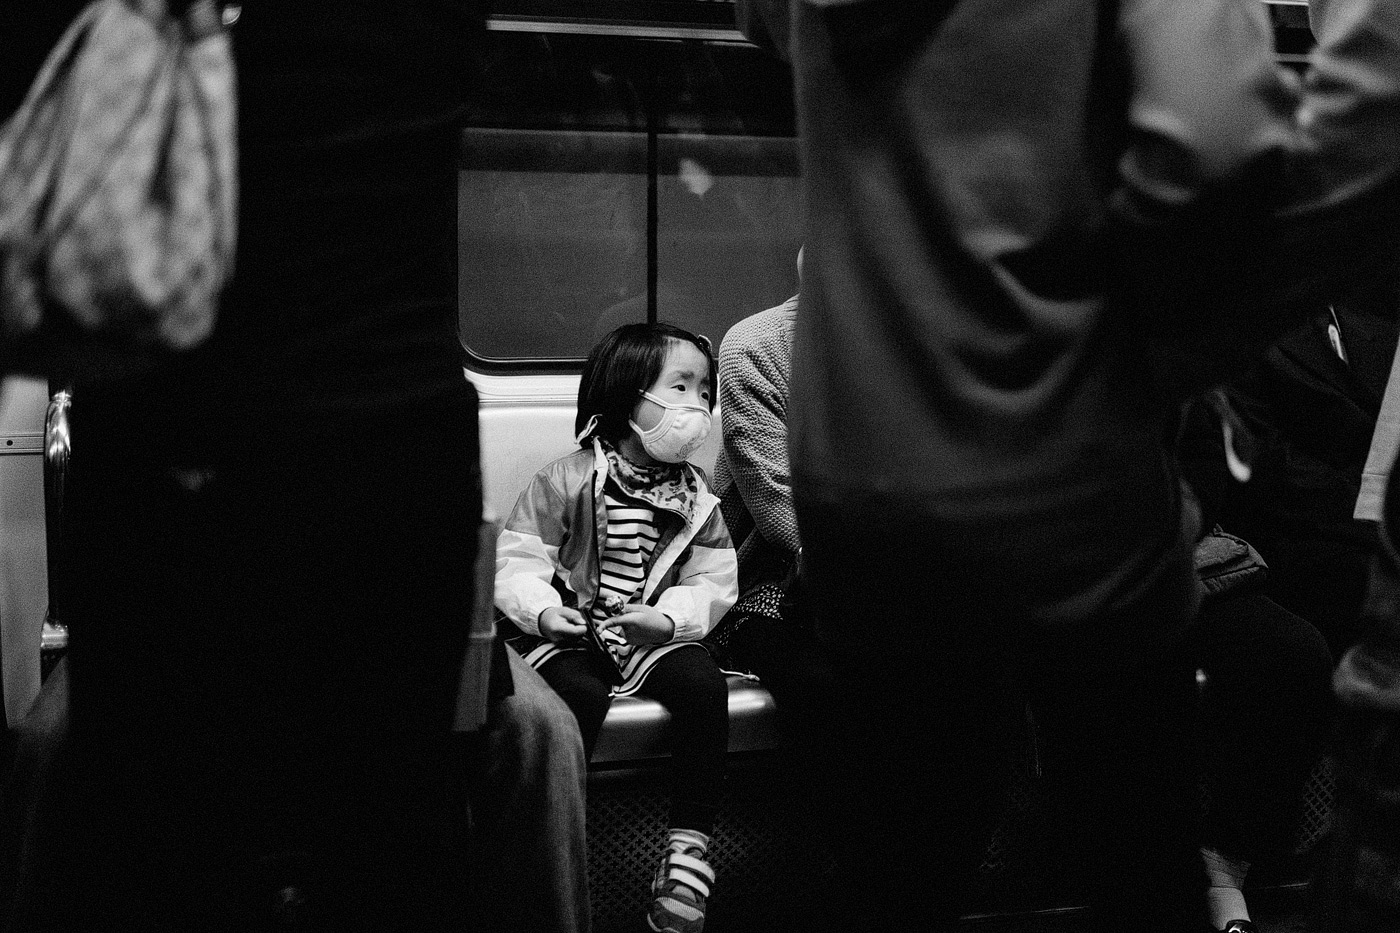 korea kid on subway medical mask